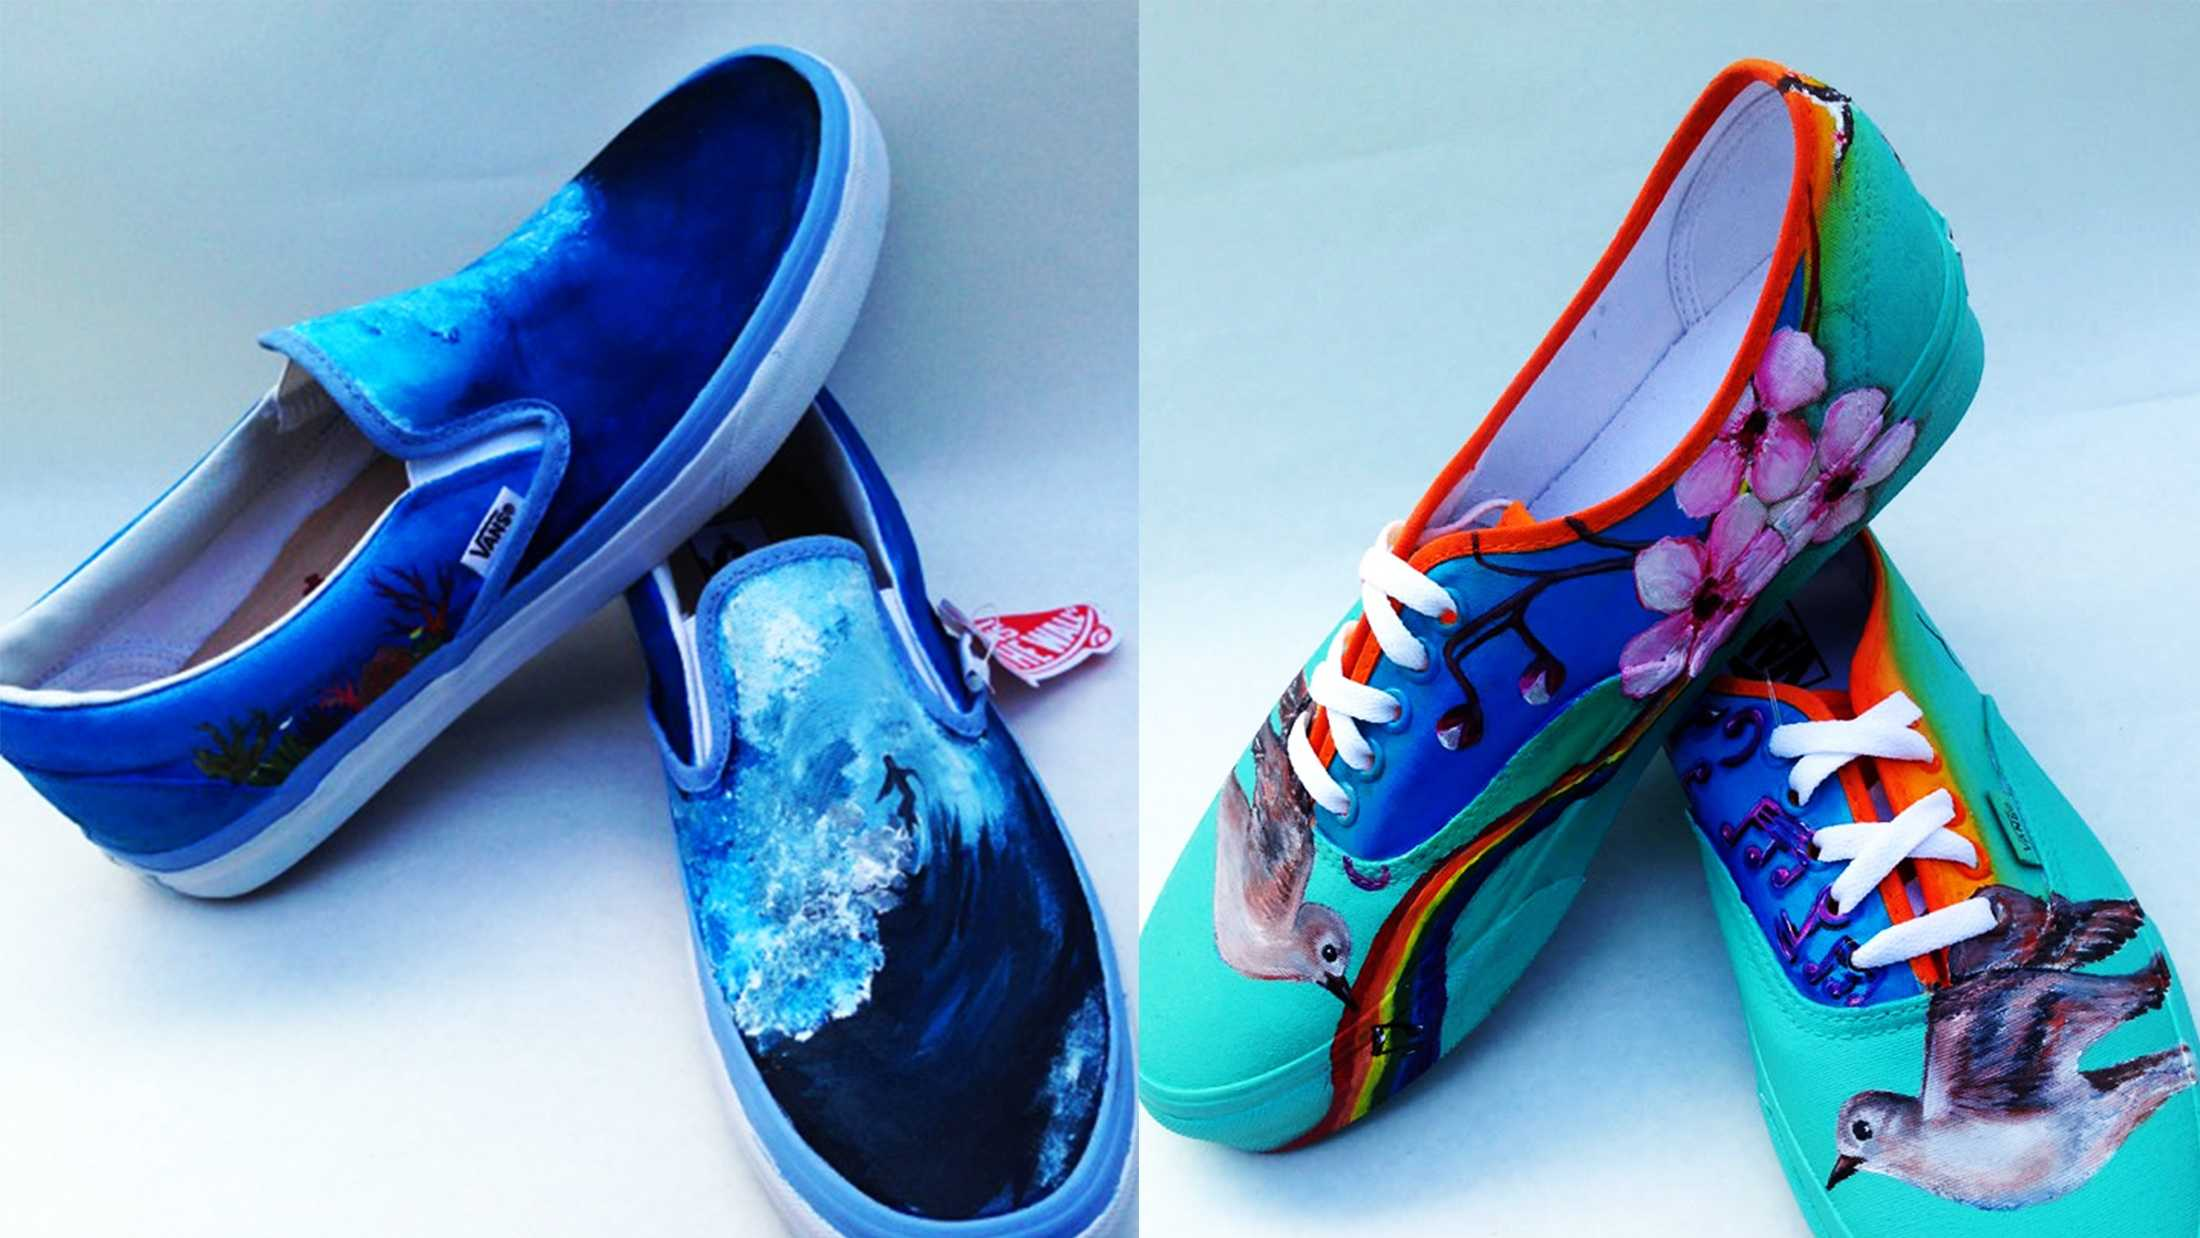 Marina High School student Marissa Braxton painted the wave shoes, and student Sally Jimenez painted the song bird shoes.